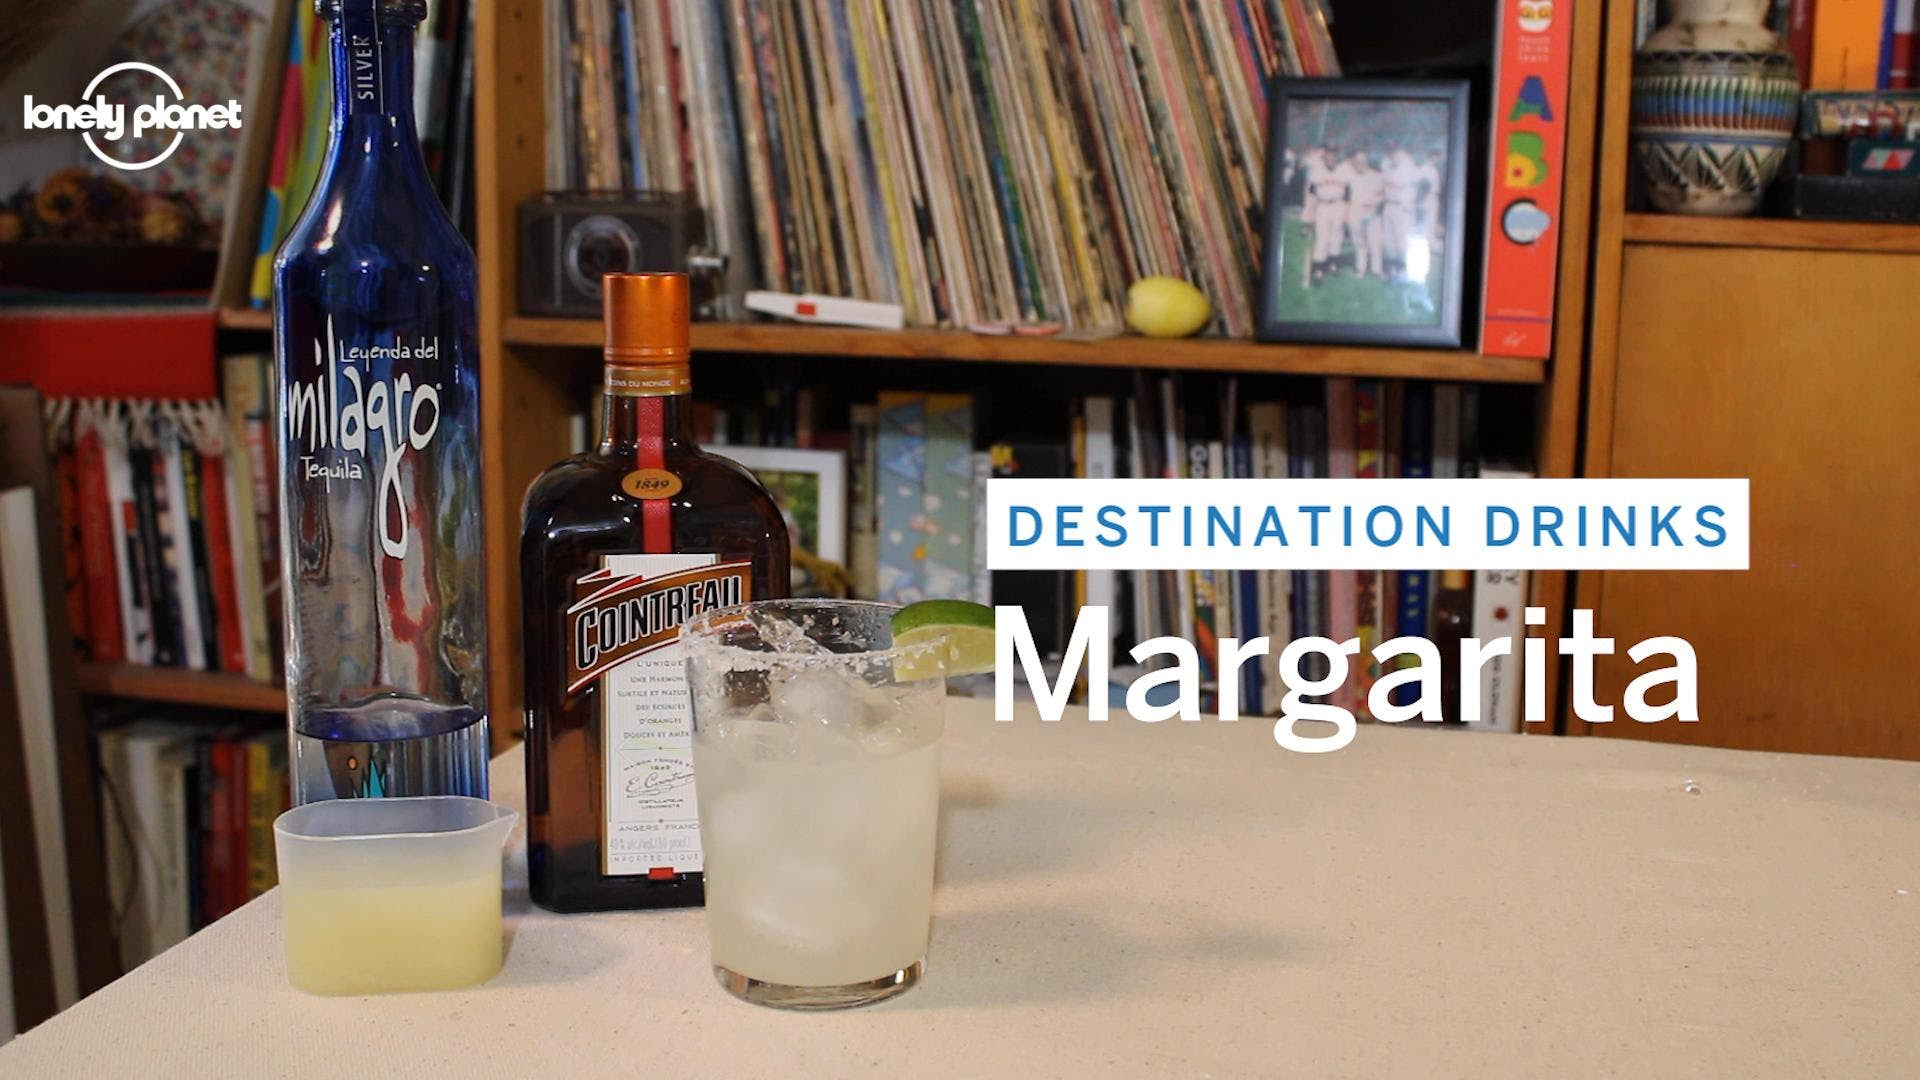 Destination Drinks: The Margarita